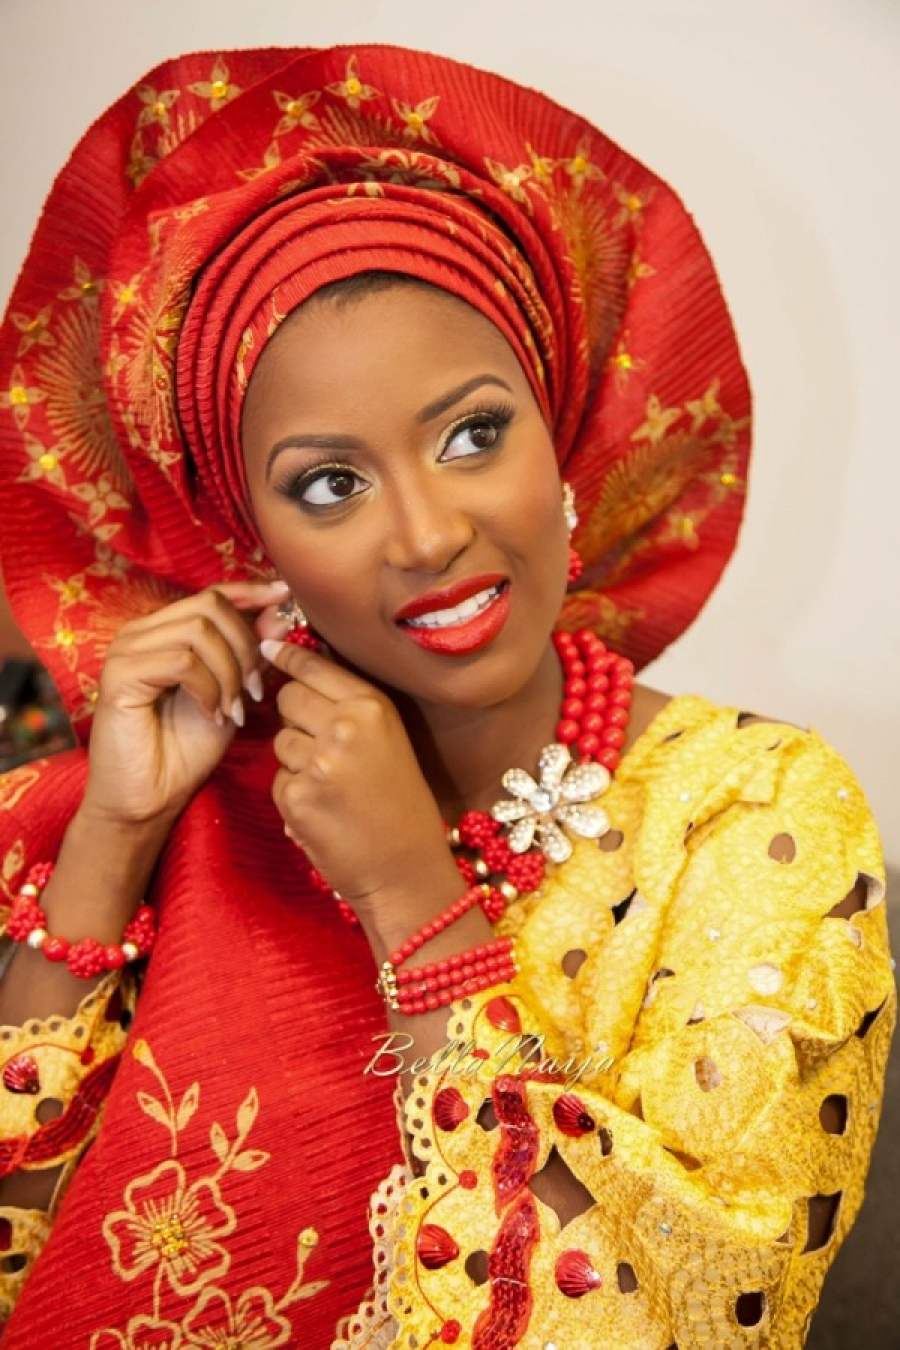 Igbo Traditional Wedding Makeup : 381+ Photos of Nigerian traditional wedding dresses in ...